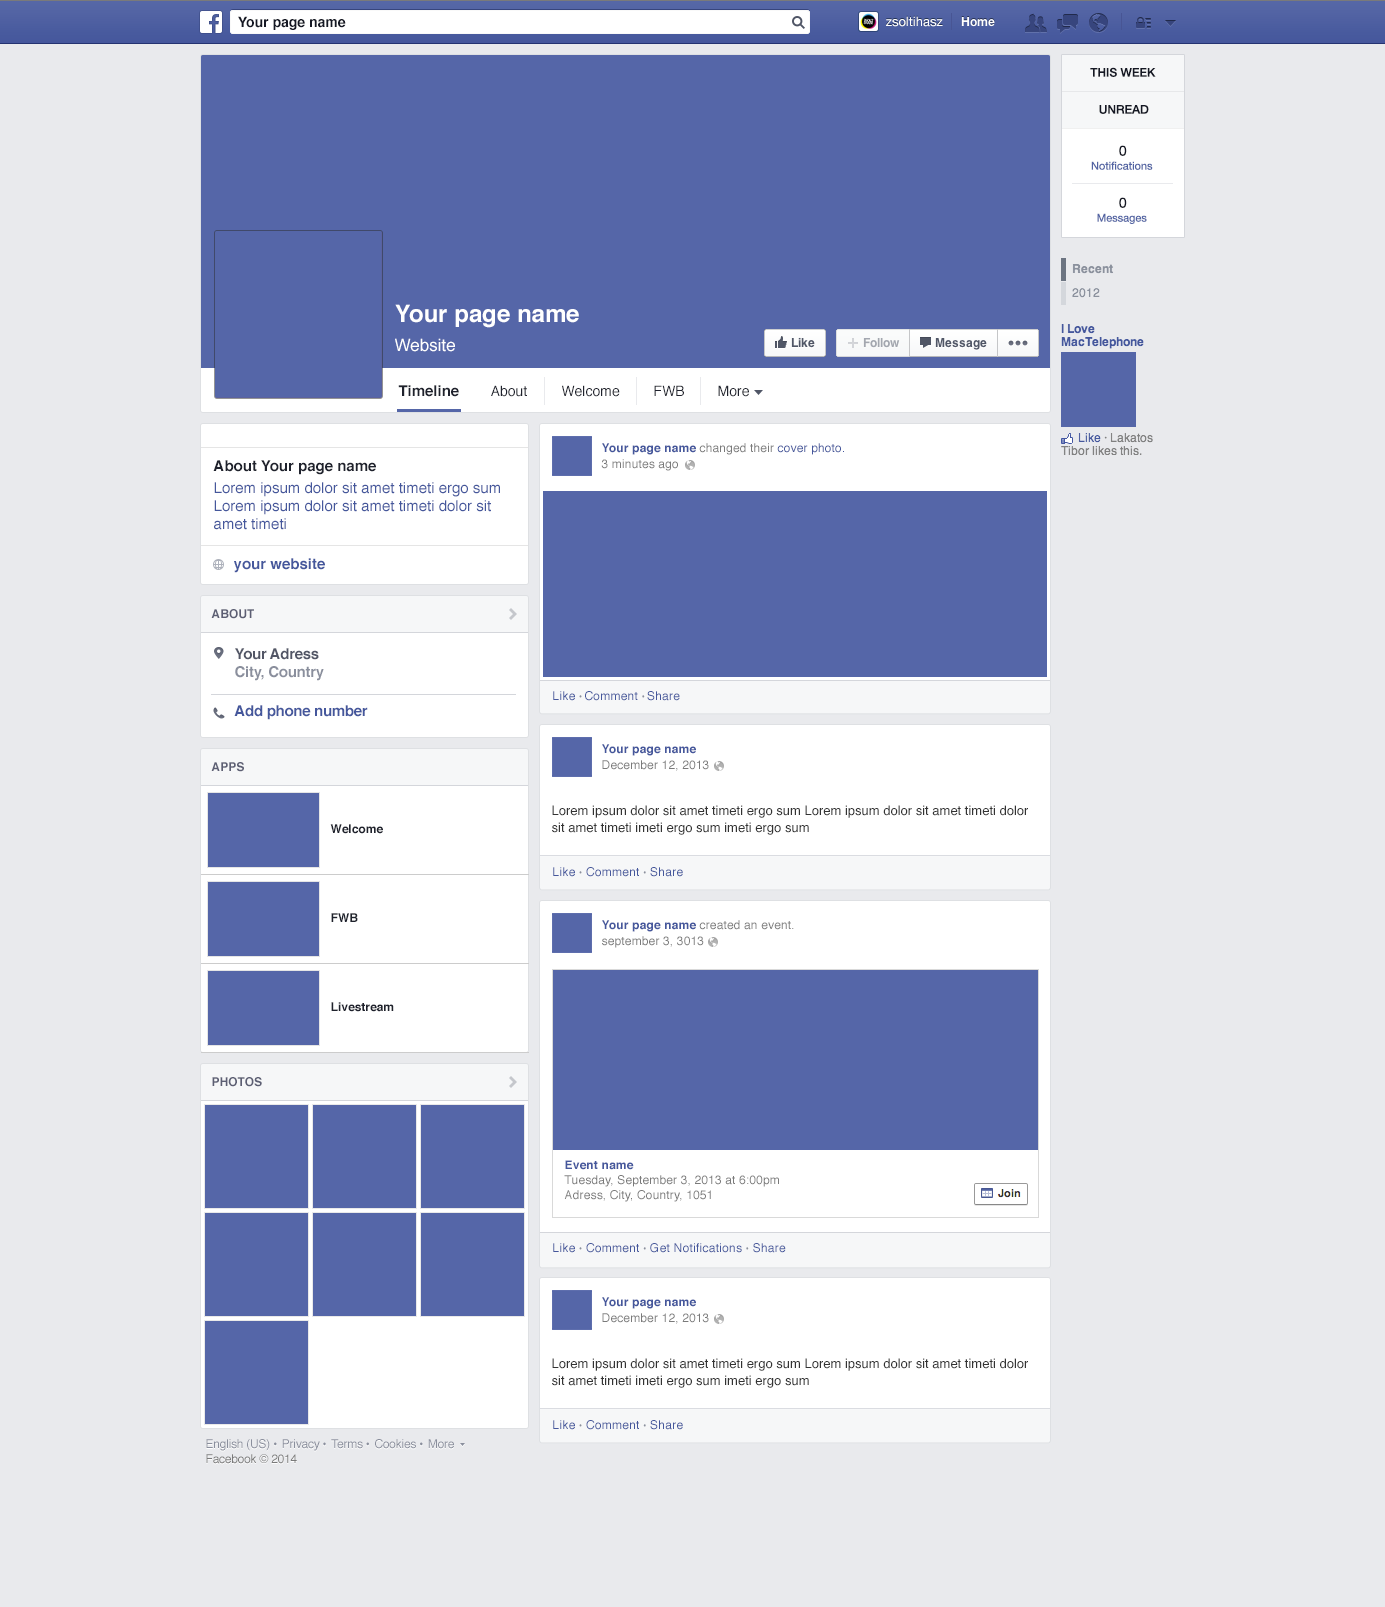 facebook page design template   Physic.minimalistics.co